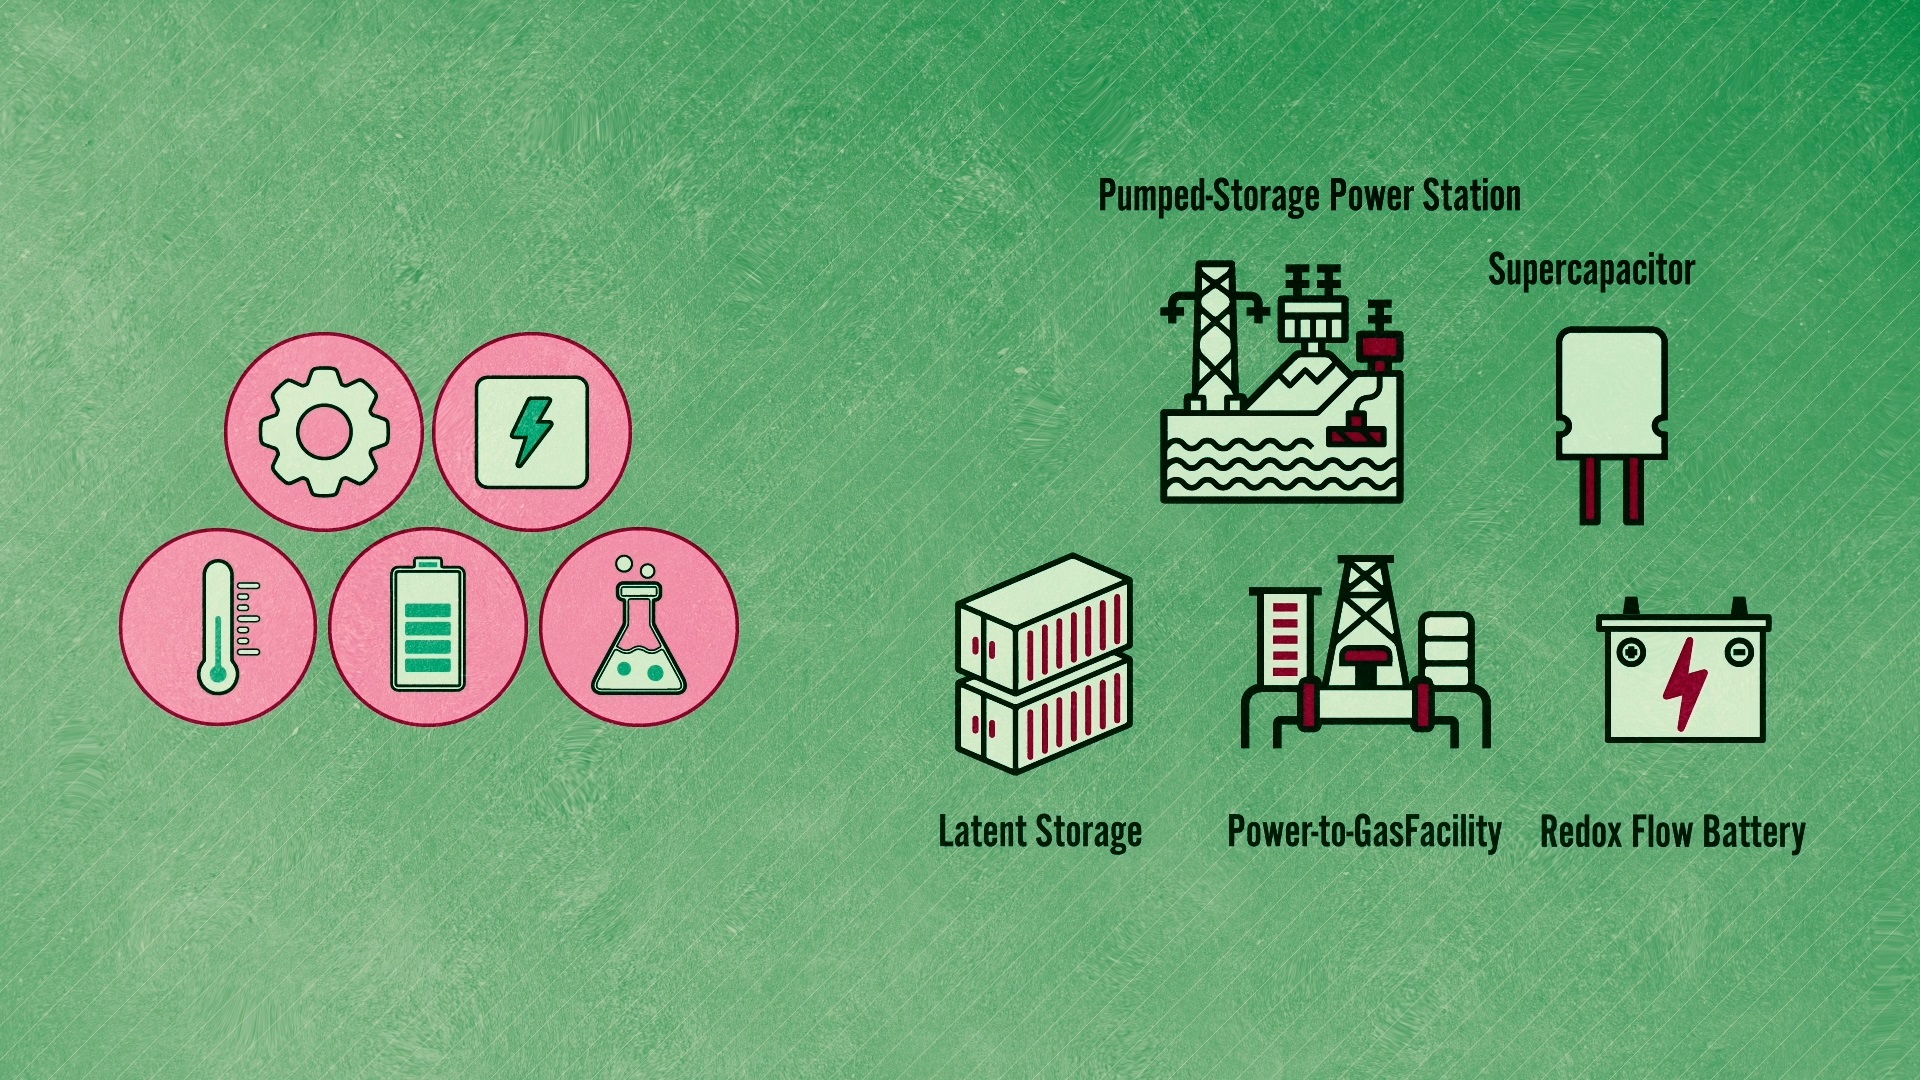 Energy III - Innovative Energy Storage Solutions (2020) - Chapter III of the Mini Lecture series on the topic of energy provides an overview of different forms of energy storage technologies.